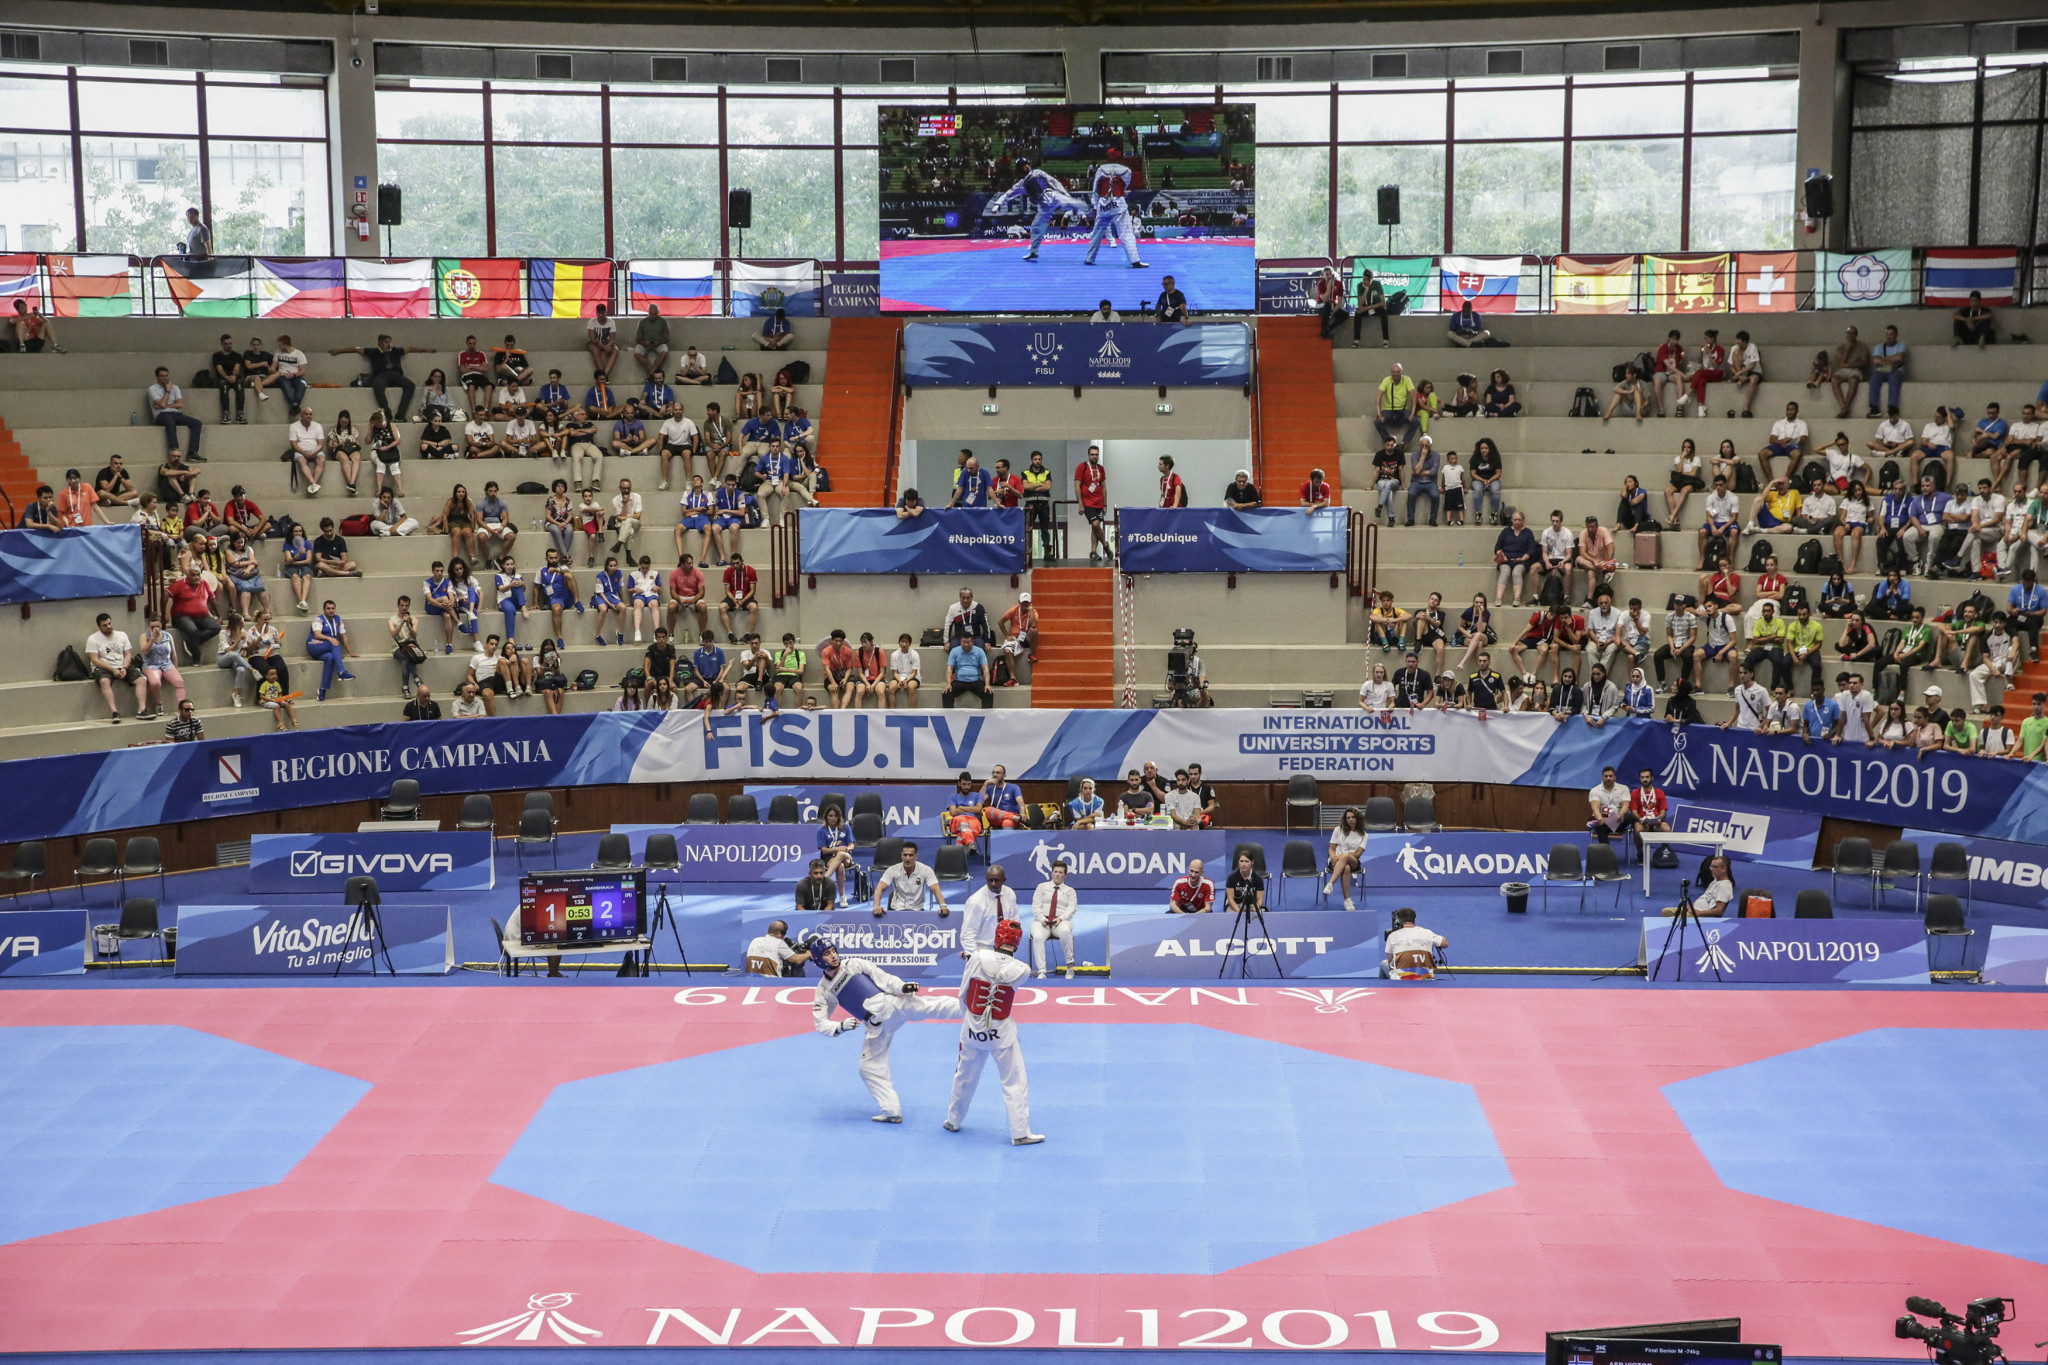 Three sets of medals were awarded in taekwondo at Palazzetto dello Sport in Casoria ©Naples 2019